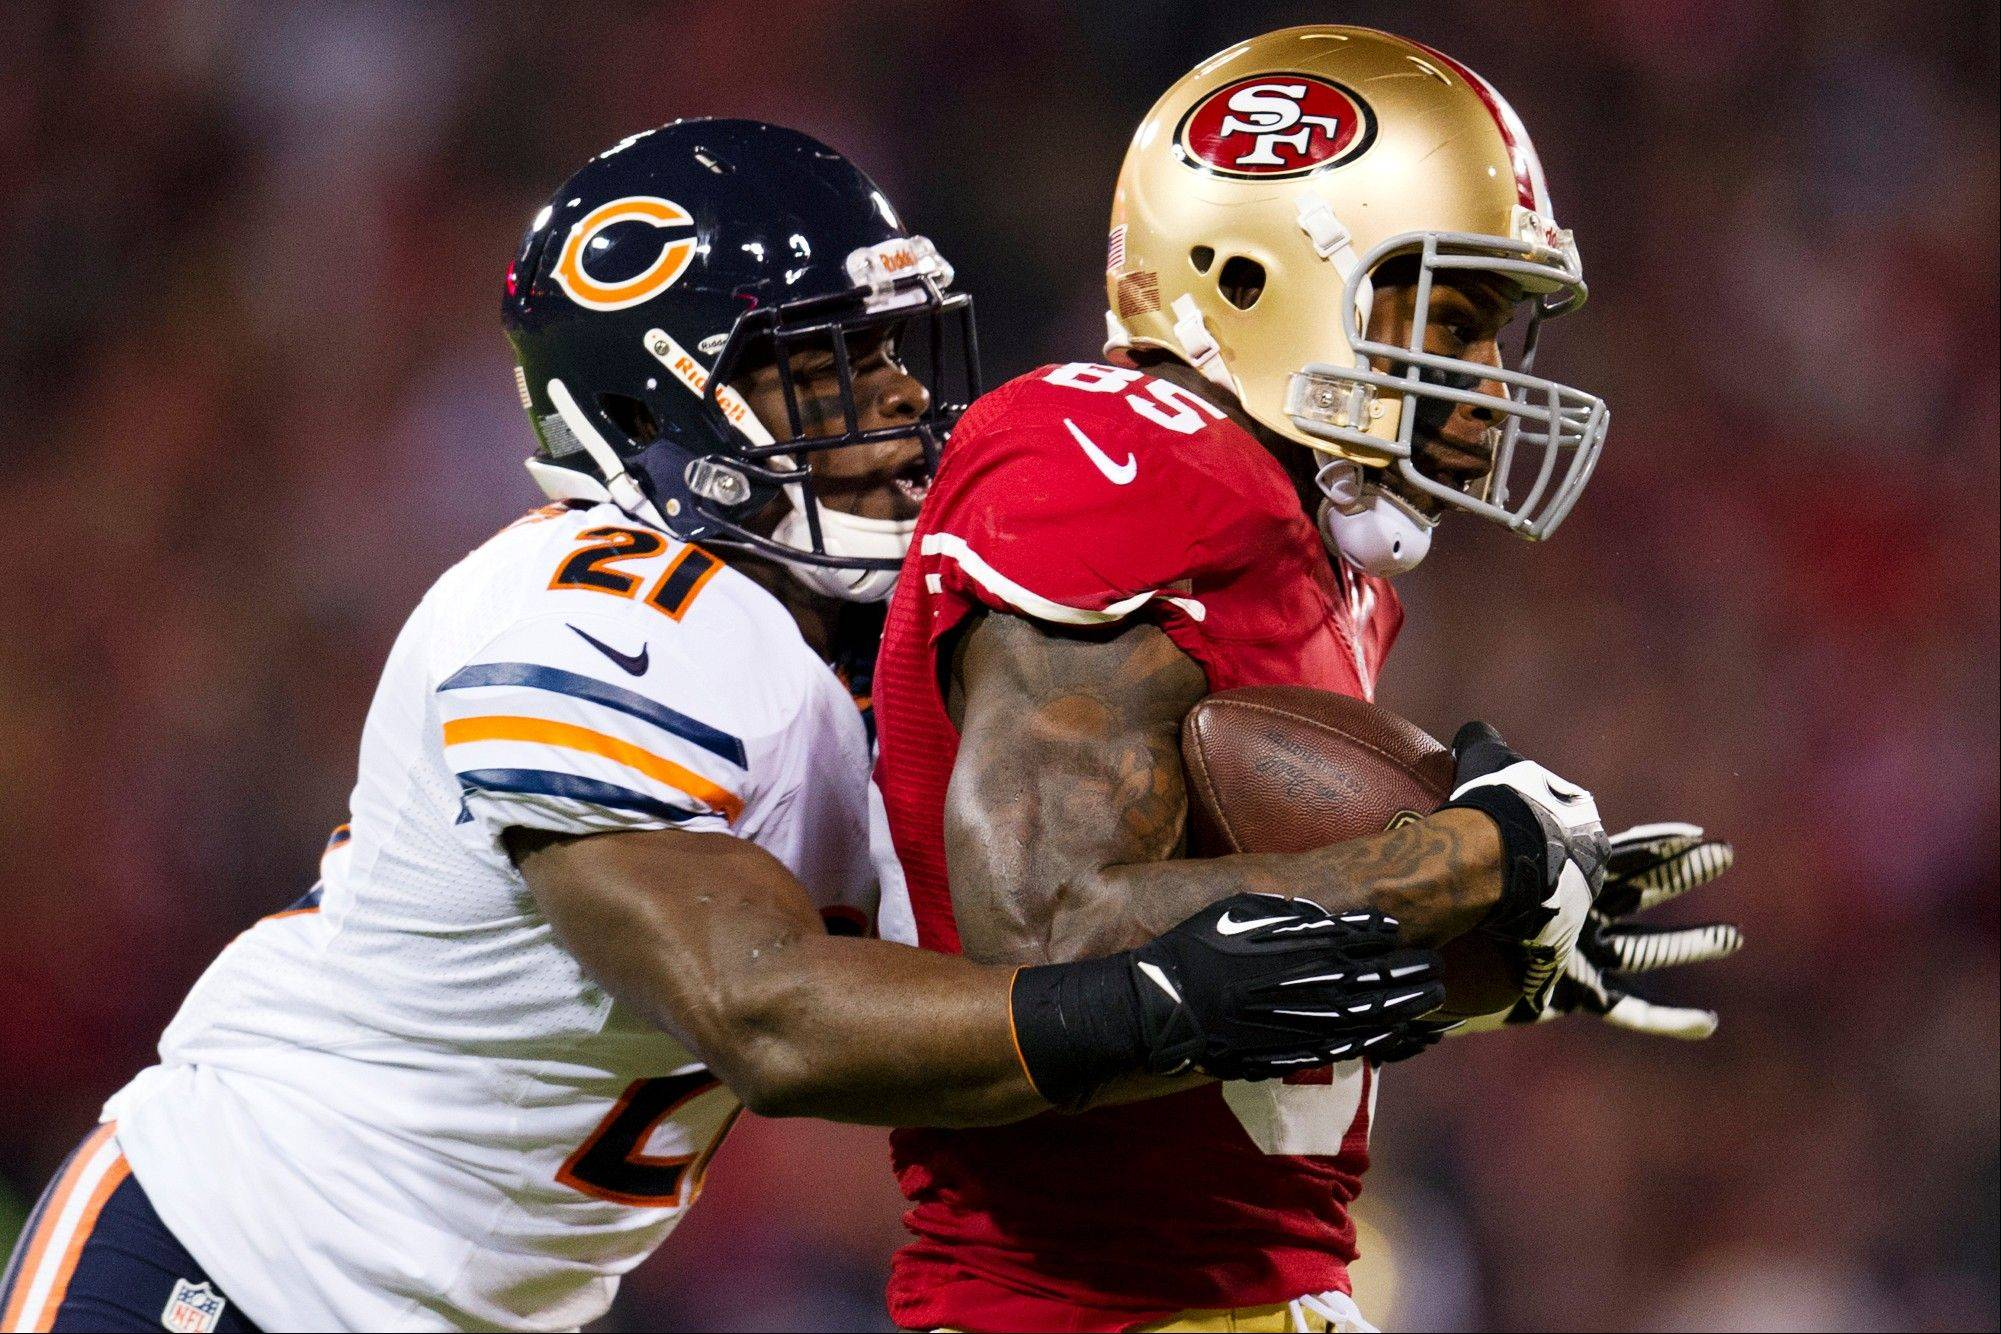 San Francisco 49ers tight end Vernon Davis completes a 22-yard pass reception as he is tackled by Chicago Bears strong safety Major Wright during the first quarter .